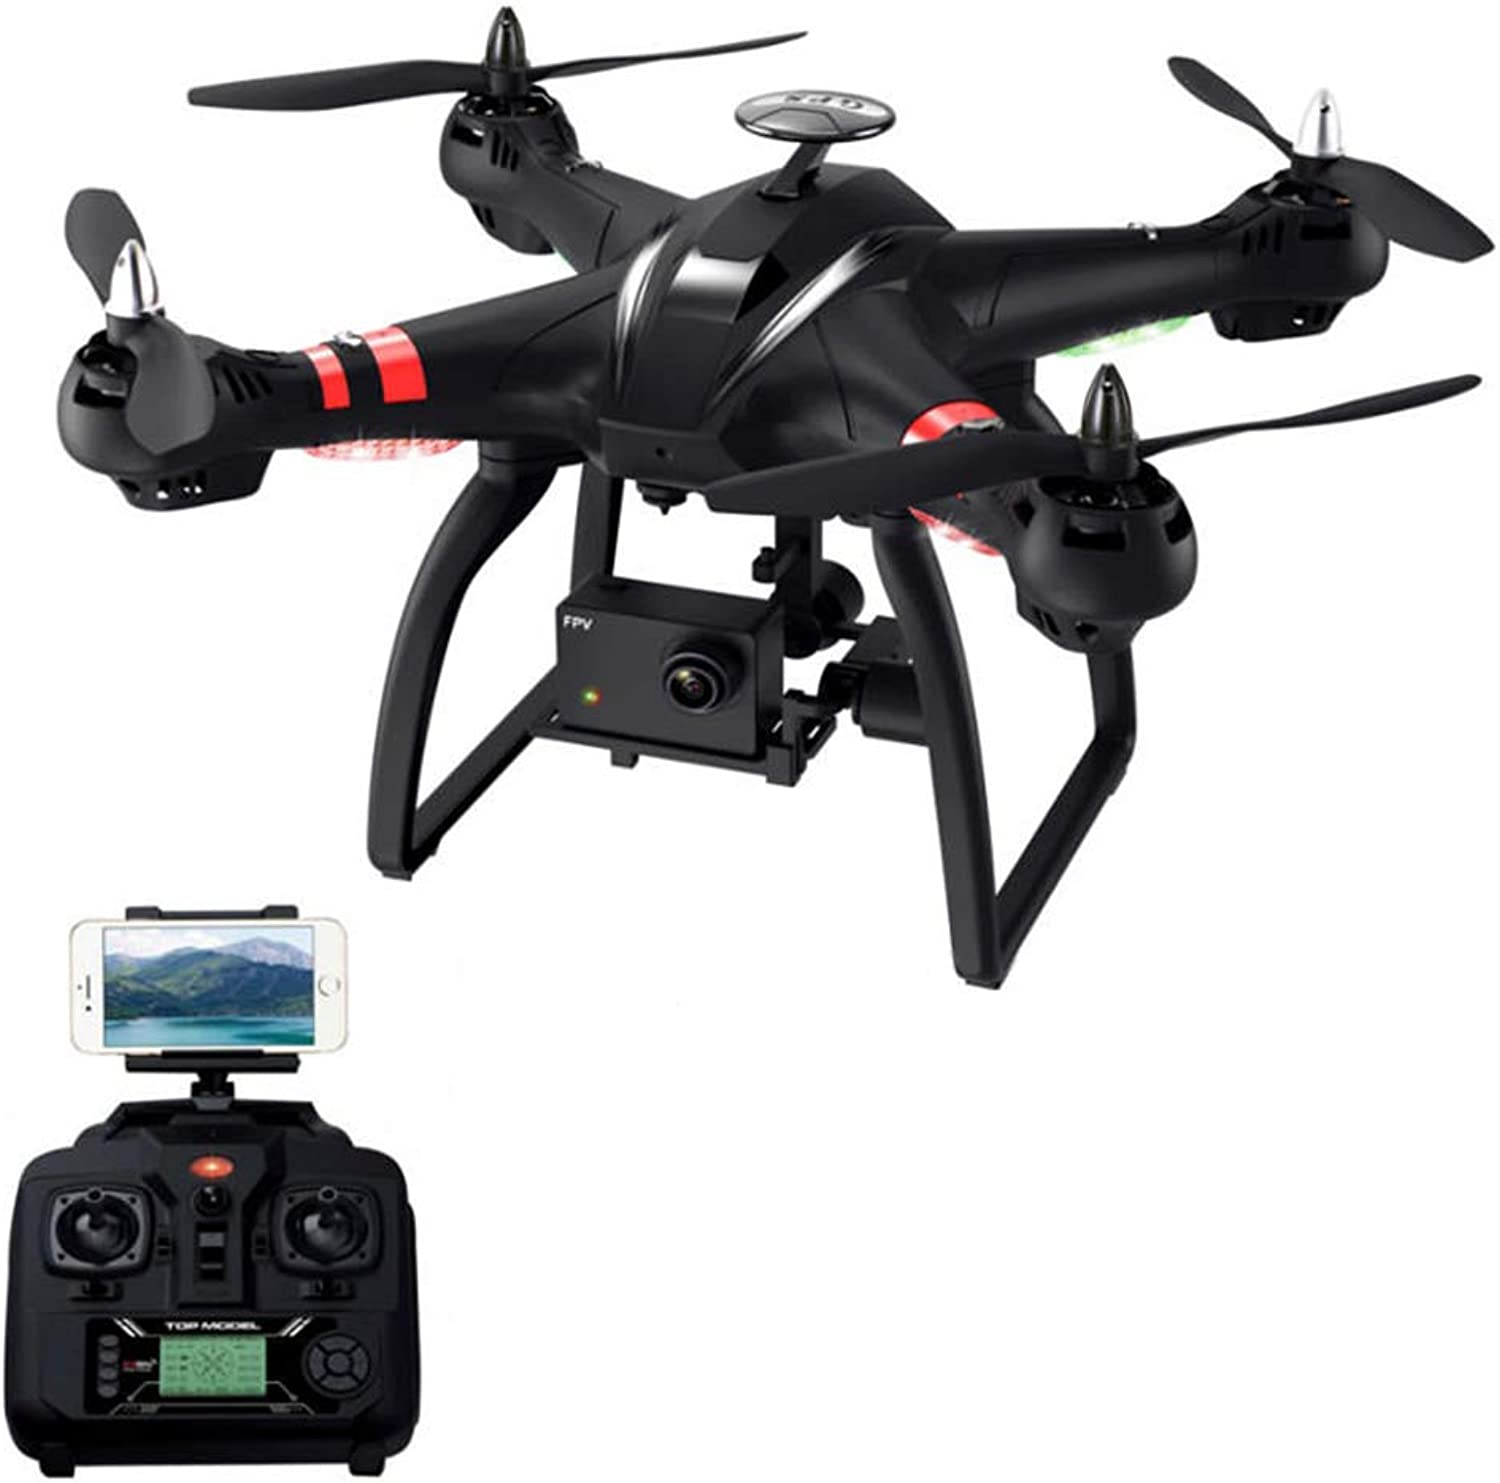 WANGKM Remote Drone 1080p One Button Takeoff And Landing Wifi Camera 360 ° Tumbling Pressure Fixed High Headless Mode Six Axis Gyro Long Flight Time